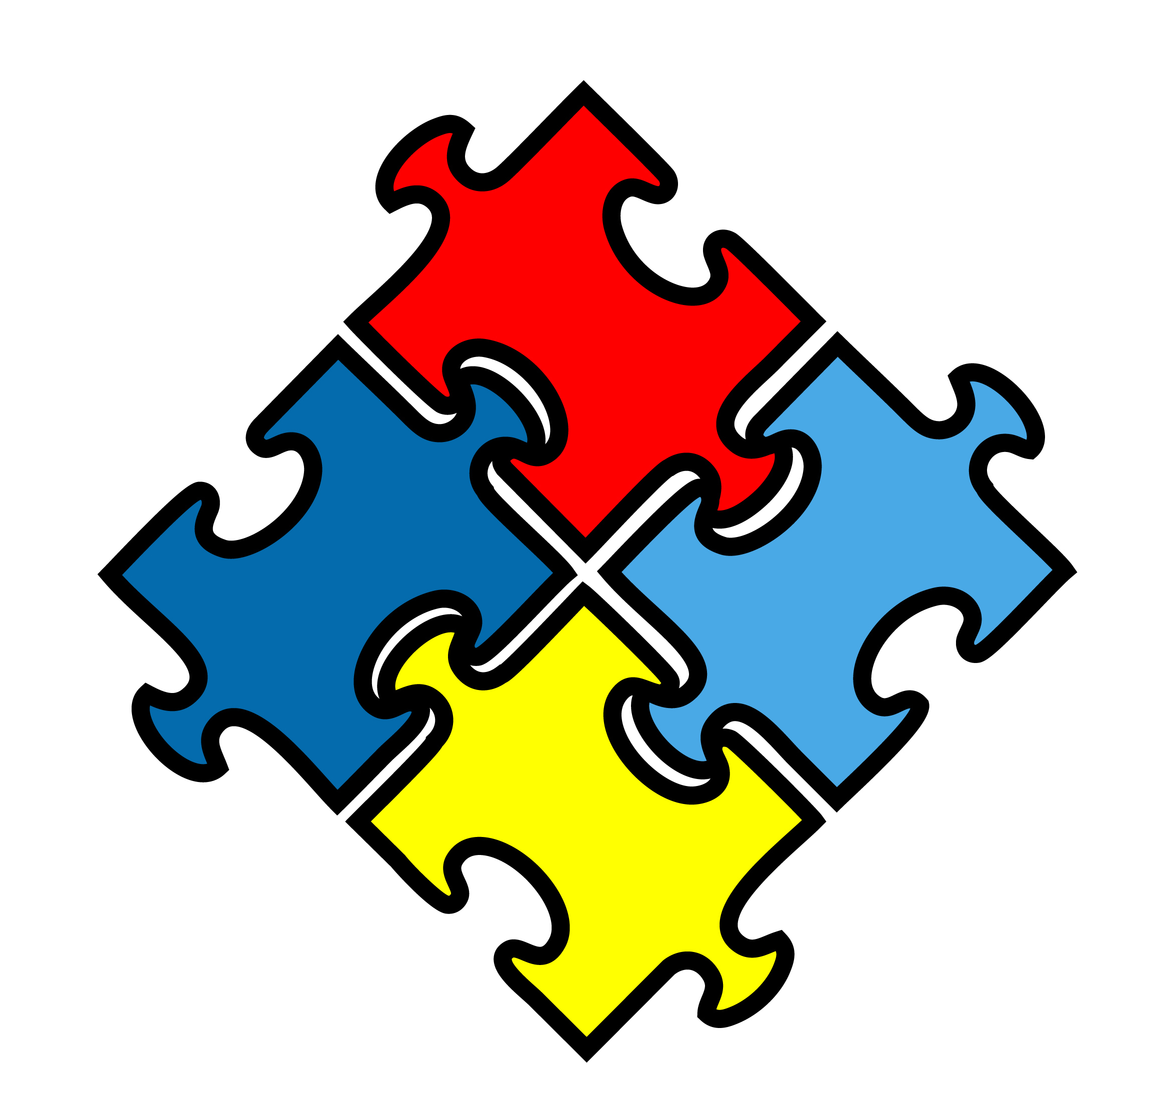 The Autism Puzzle Piece – we do not need a missing puzzle piece, what we need is acceptance